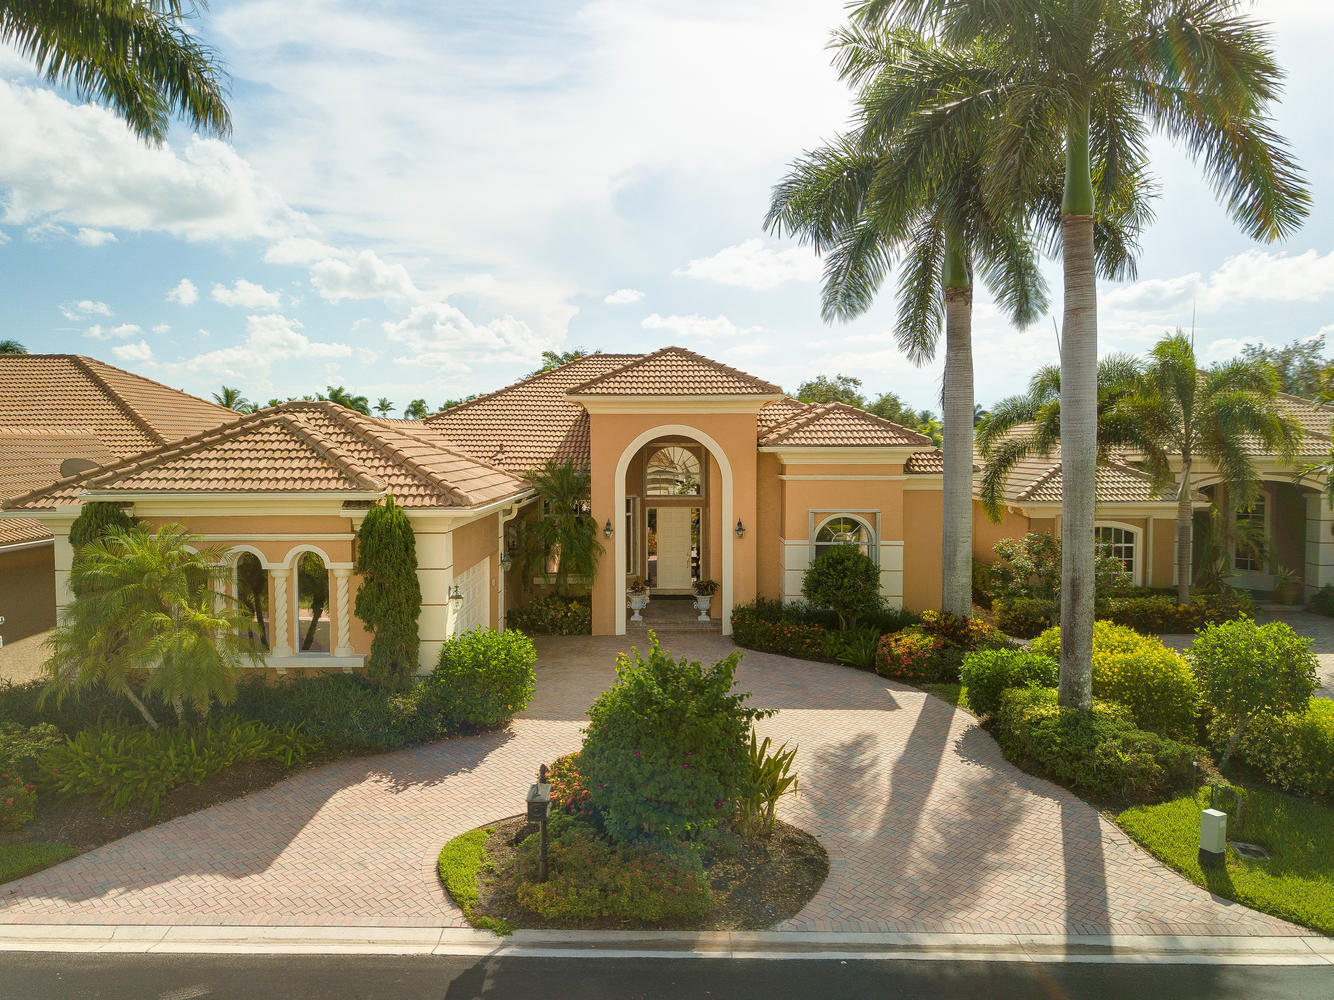 Home for sale in Monte Verde,  Ibis  Golf & Country Club, West Palm Beach Florida